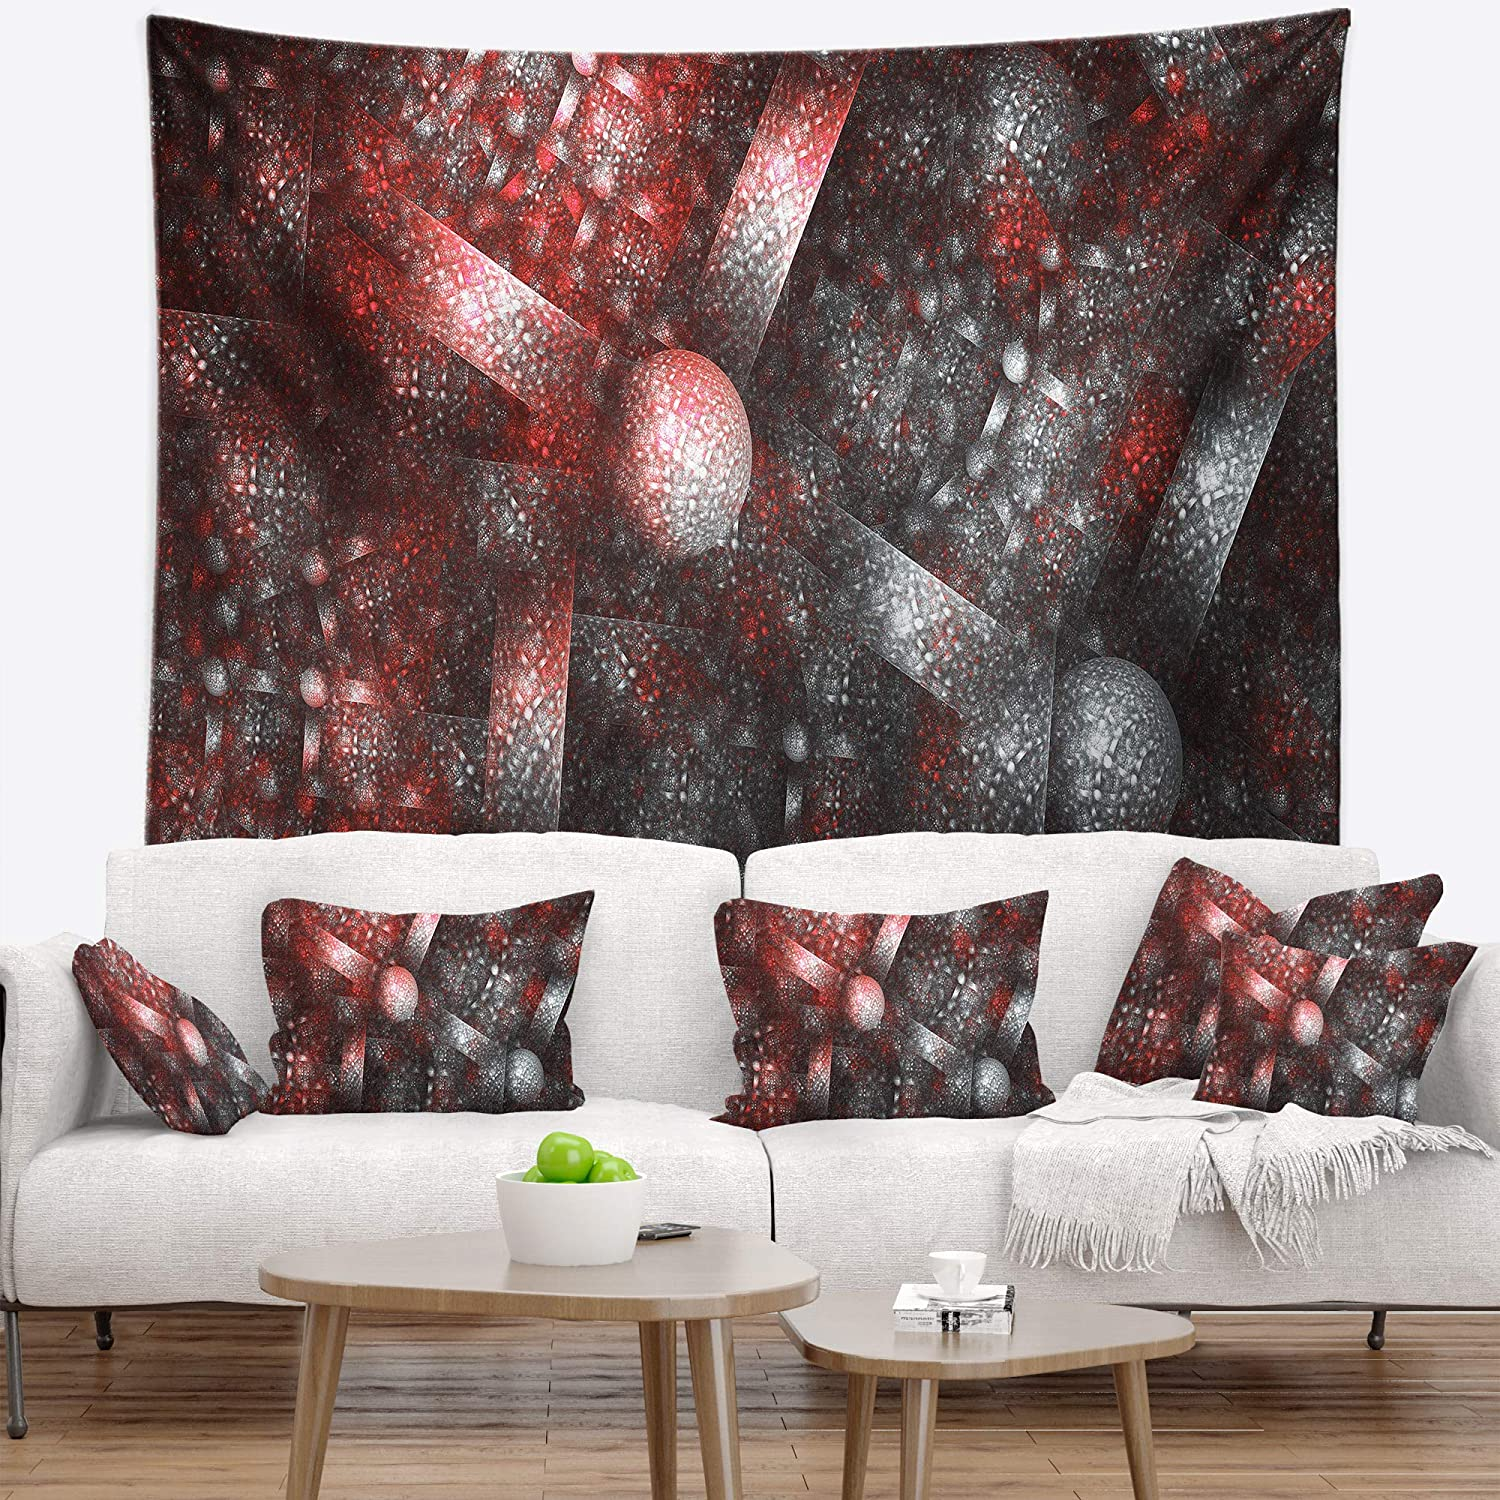 Designart TAP16121-60-50  Crystal Cell Red Steel Texture Abstract Blanket D/écor Art for Home and Office Wall Tapestry Large Created On Lightweight Polyester Fabric 60 in x 50 in